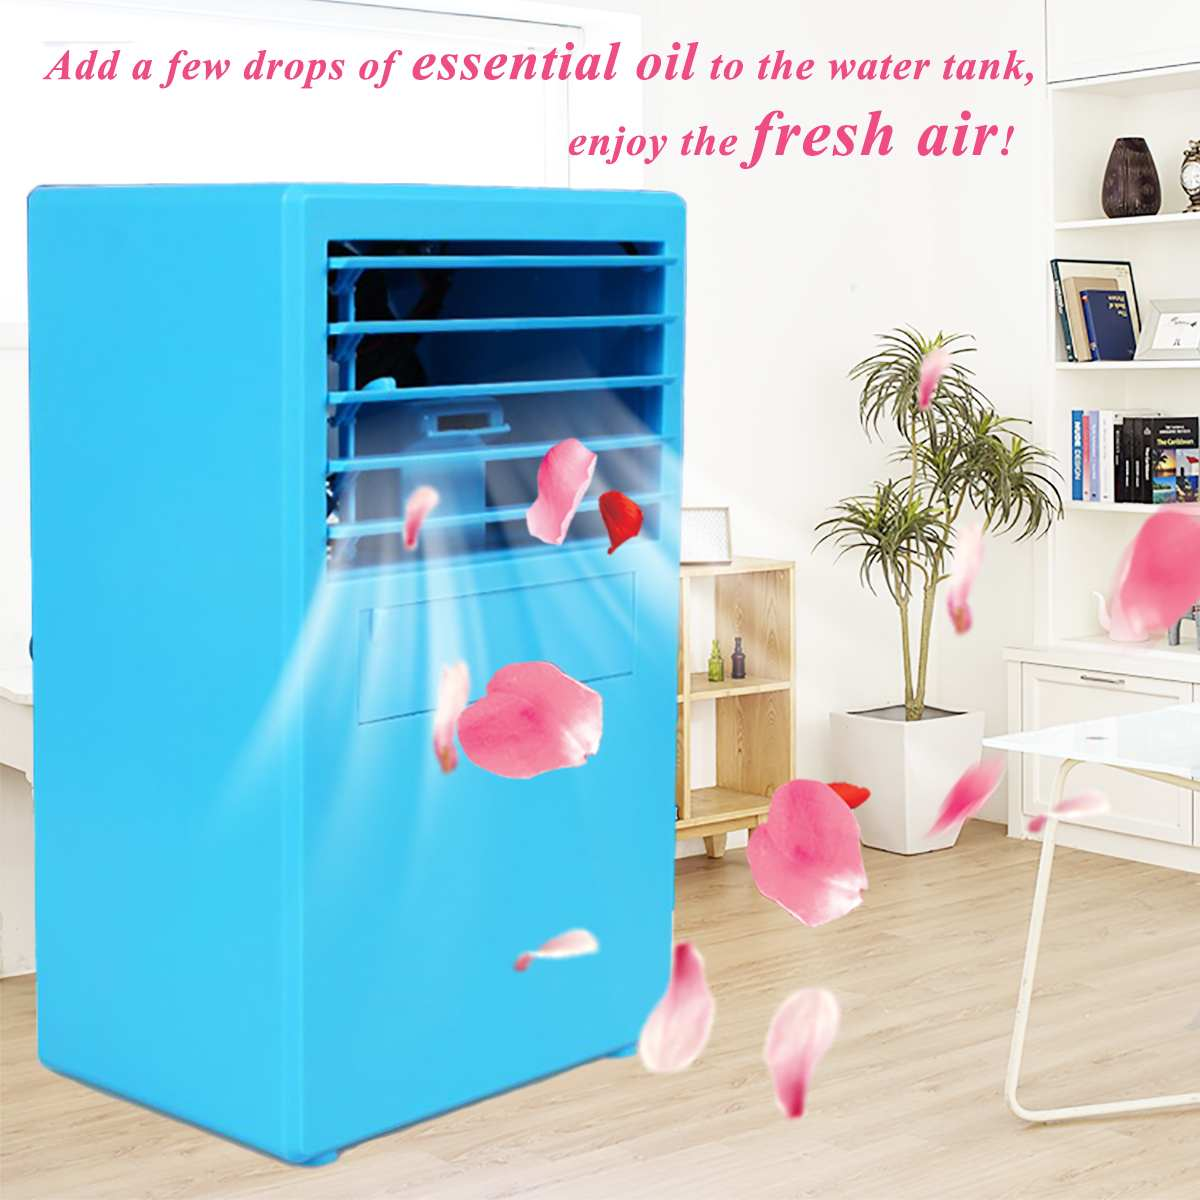 Portable 24V 18W 3 Speed Mini Spray Humidification Air Conditioning Fan 2 Colors 5 Leaf Cooling Fan